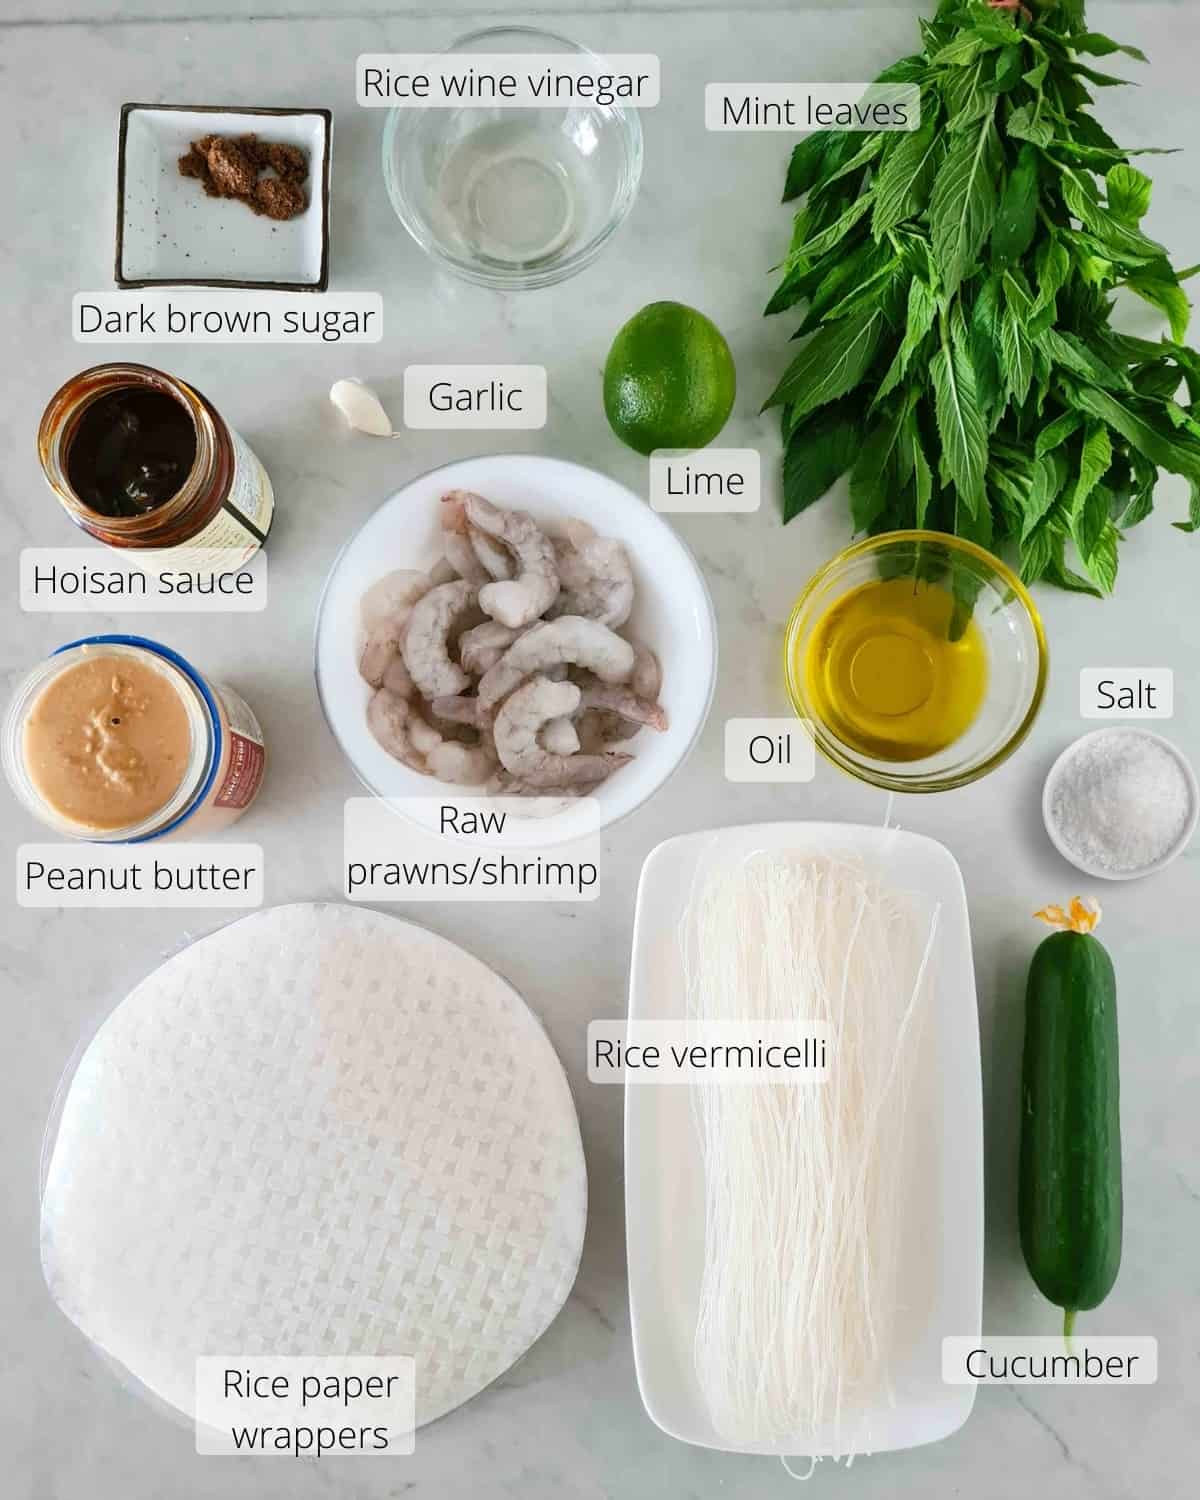 Overhead shot of all ingredients required for this recipe